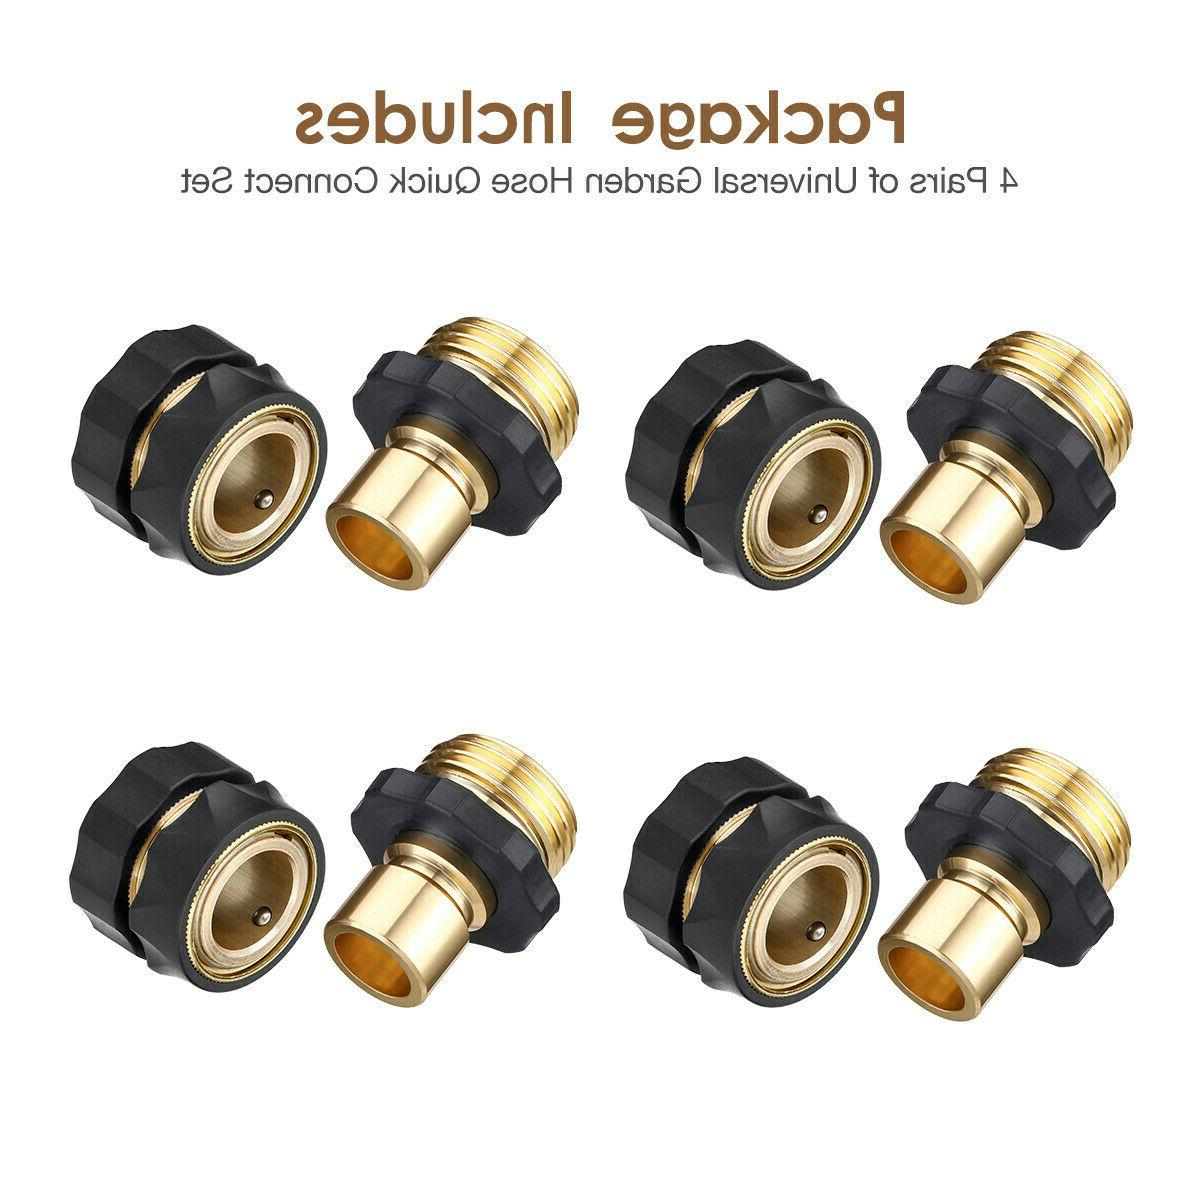 4/8 Garden Quick Fit Female Male Connector US